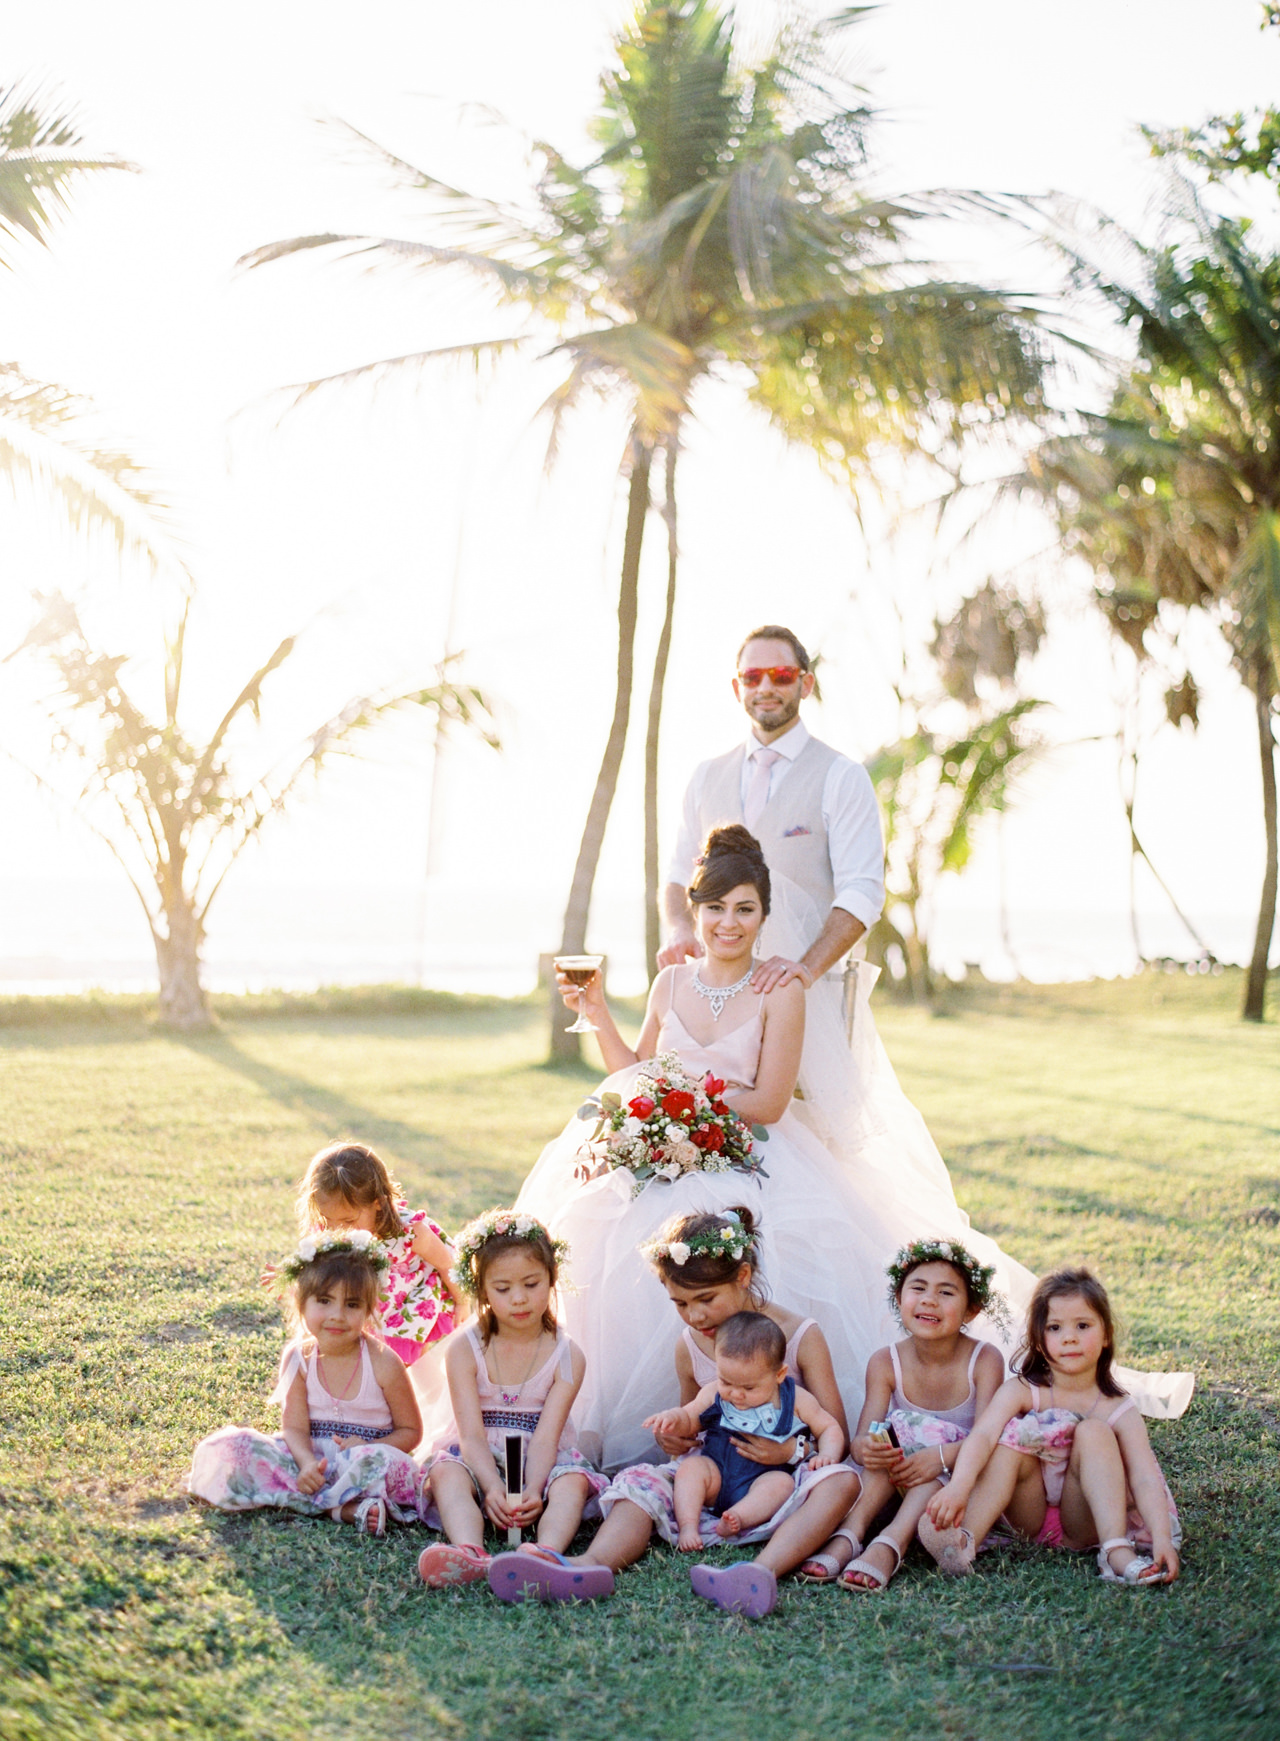 P&C: Getting Married in Bali 18